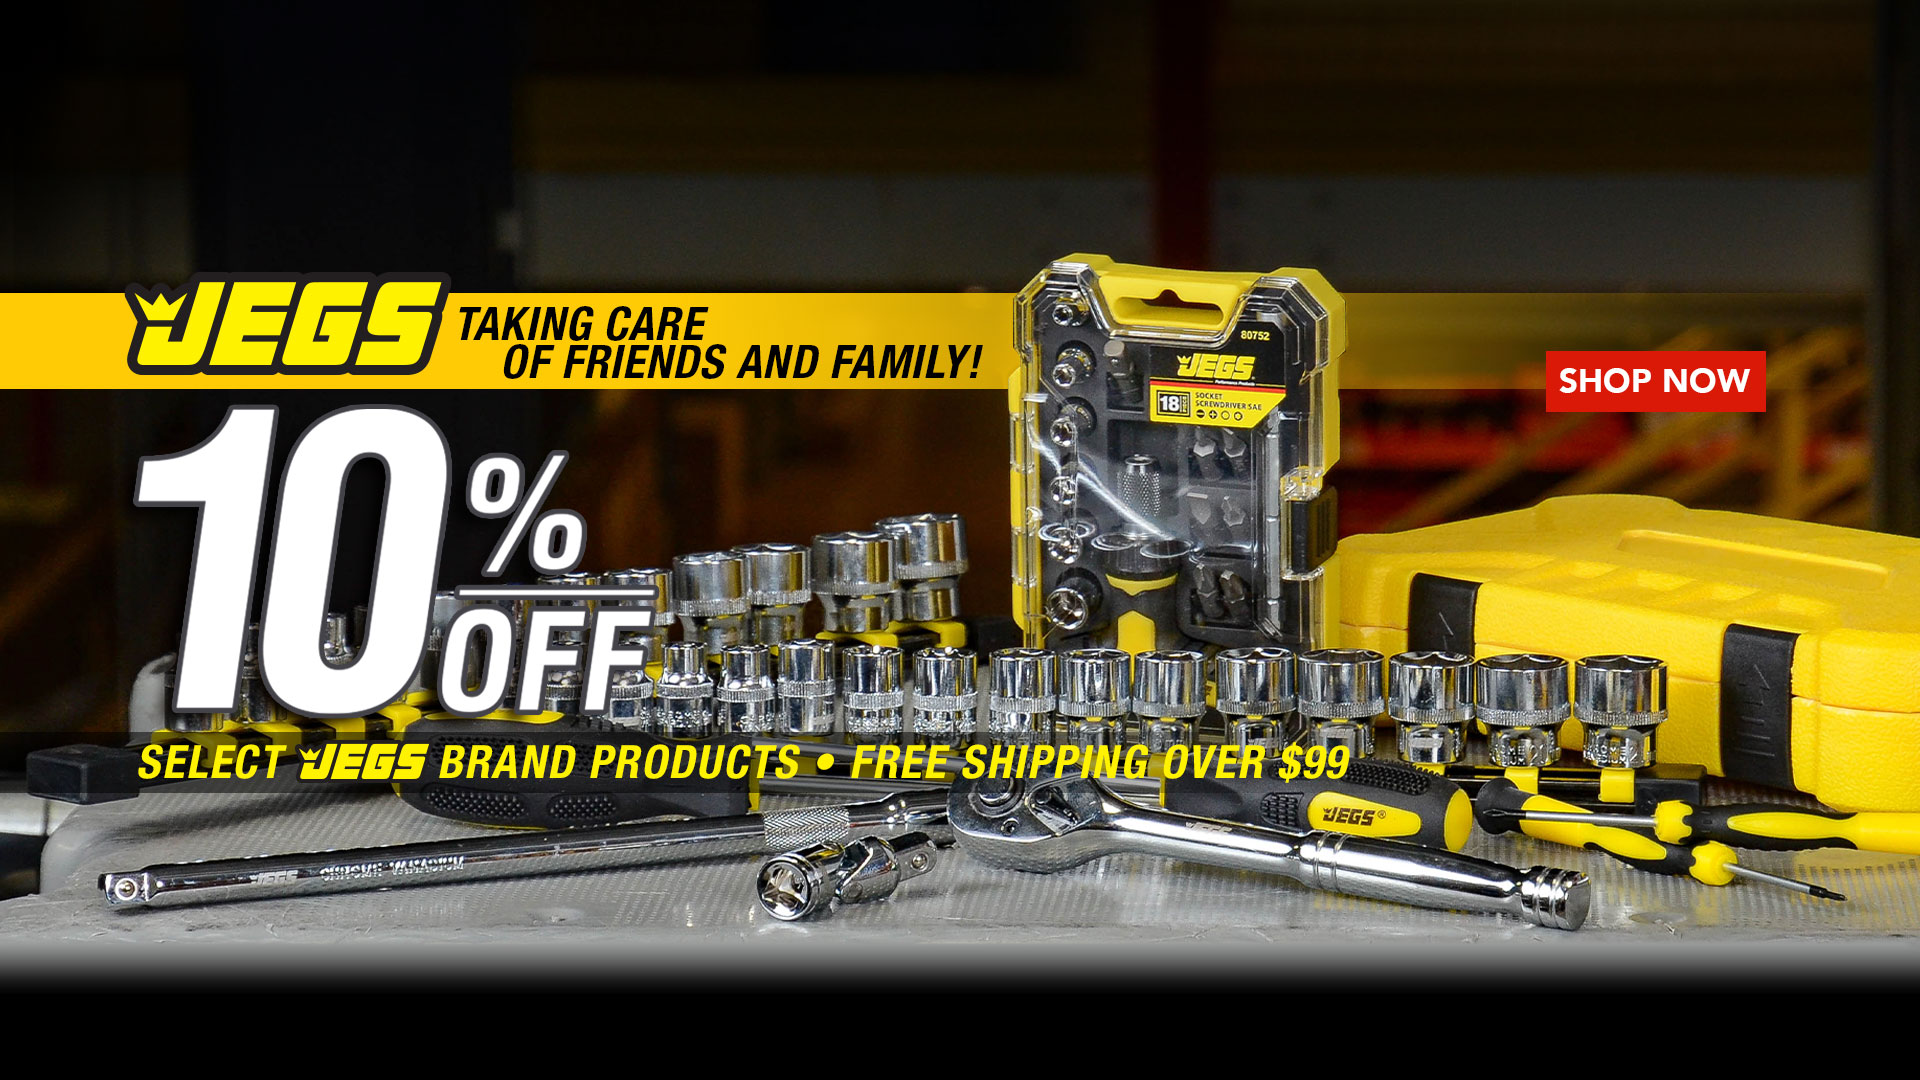 JEGS Taking Care of Friends and Family 10% off